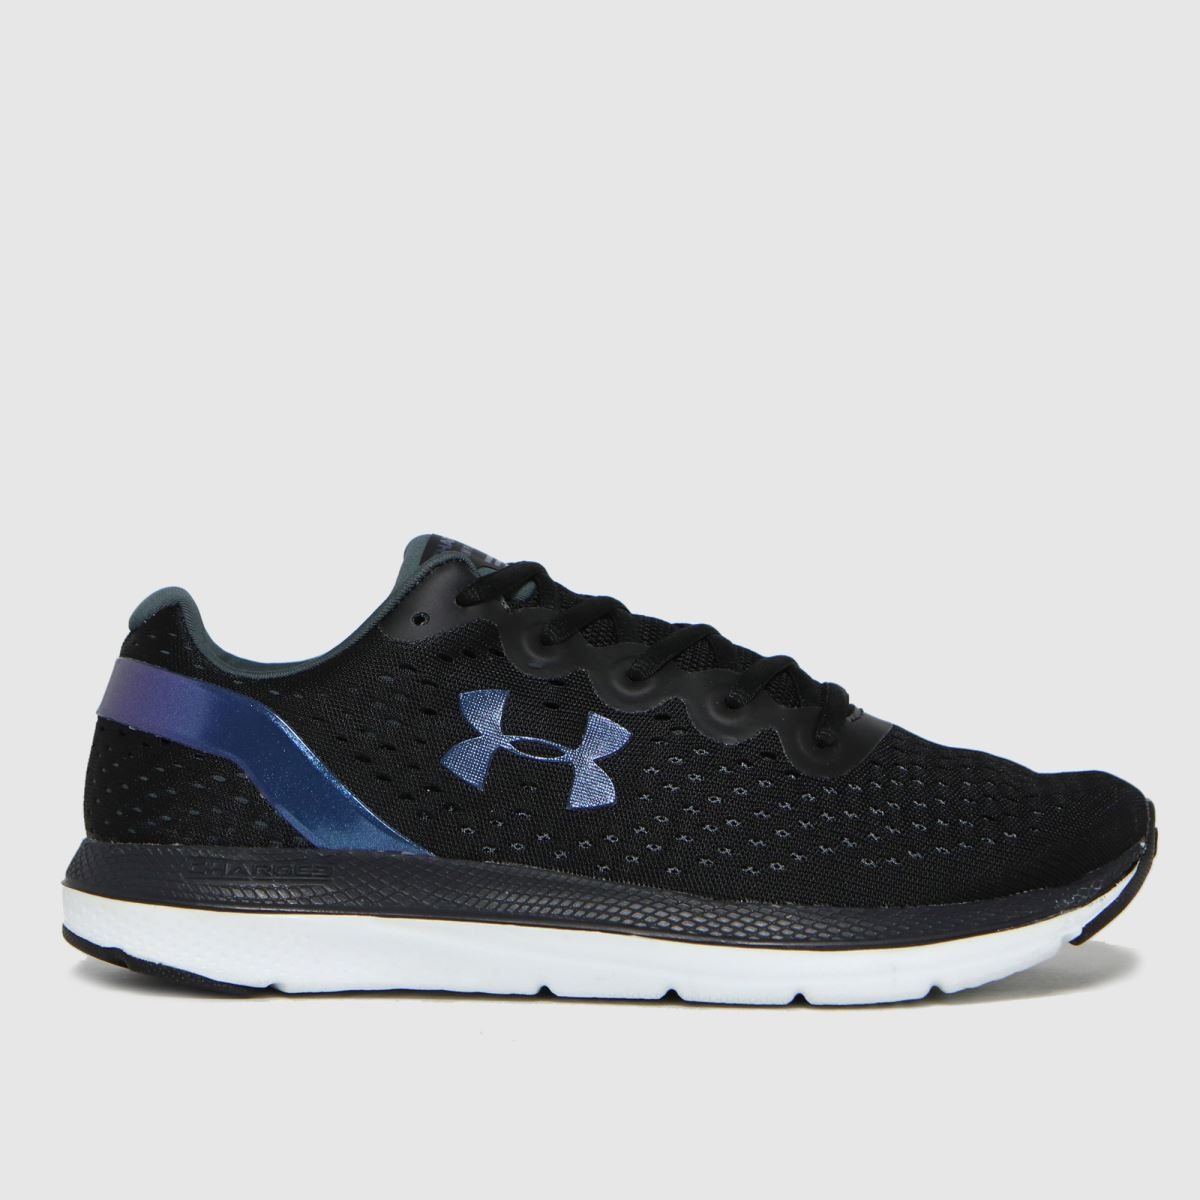 Under Armour Black Charged Impulse Shift Trainers